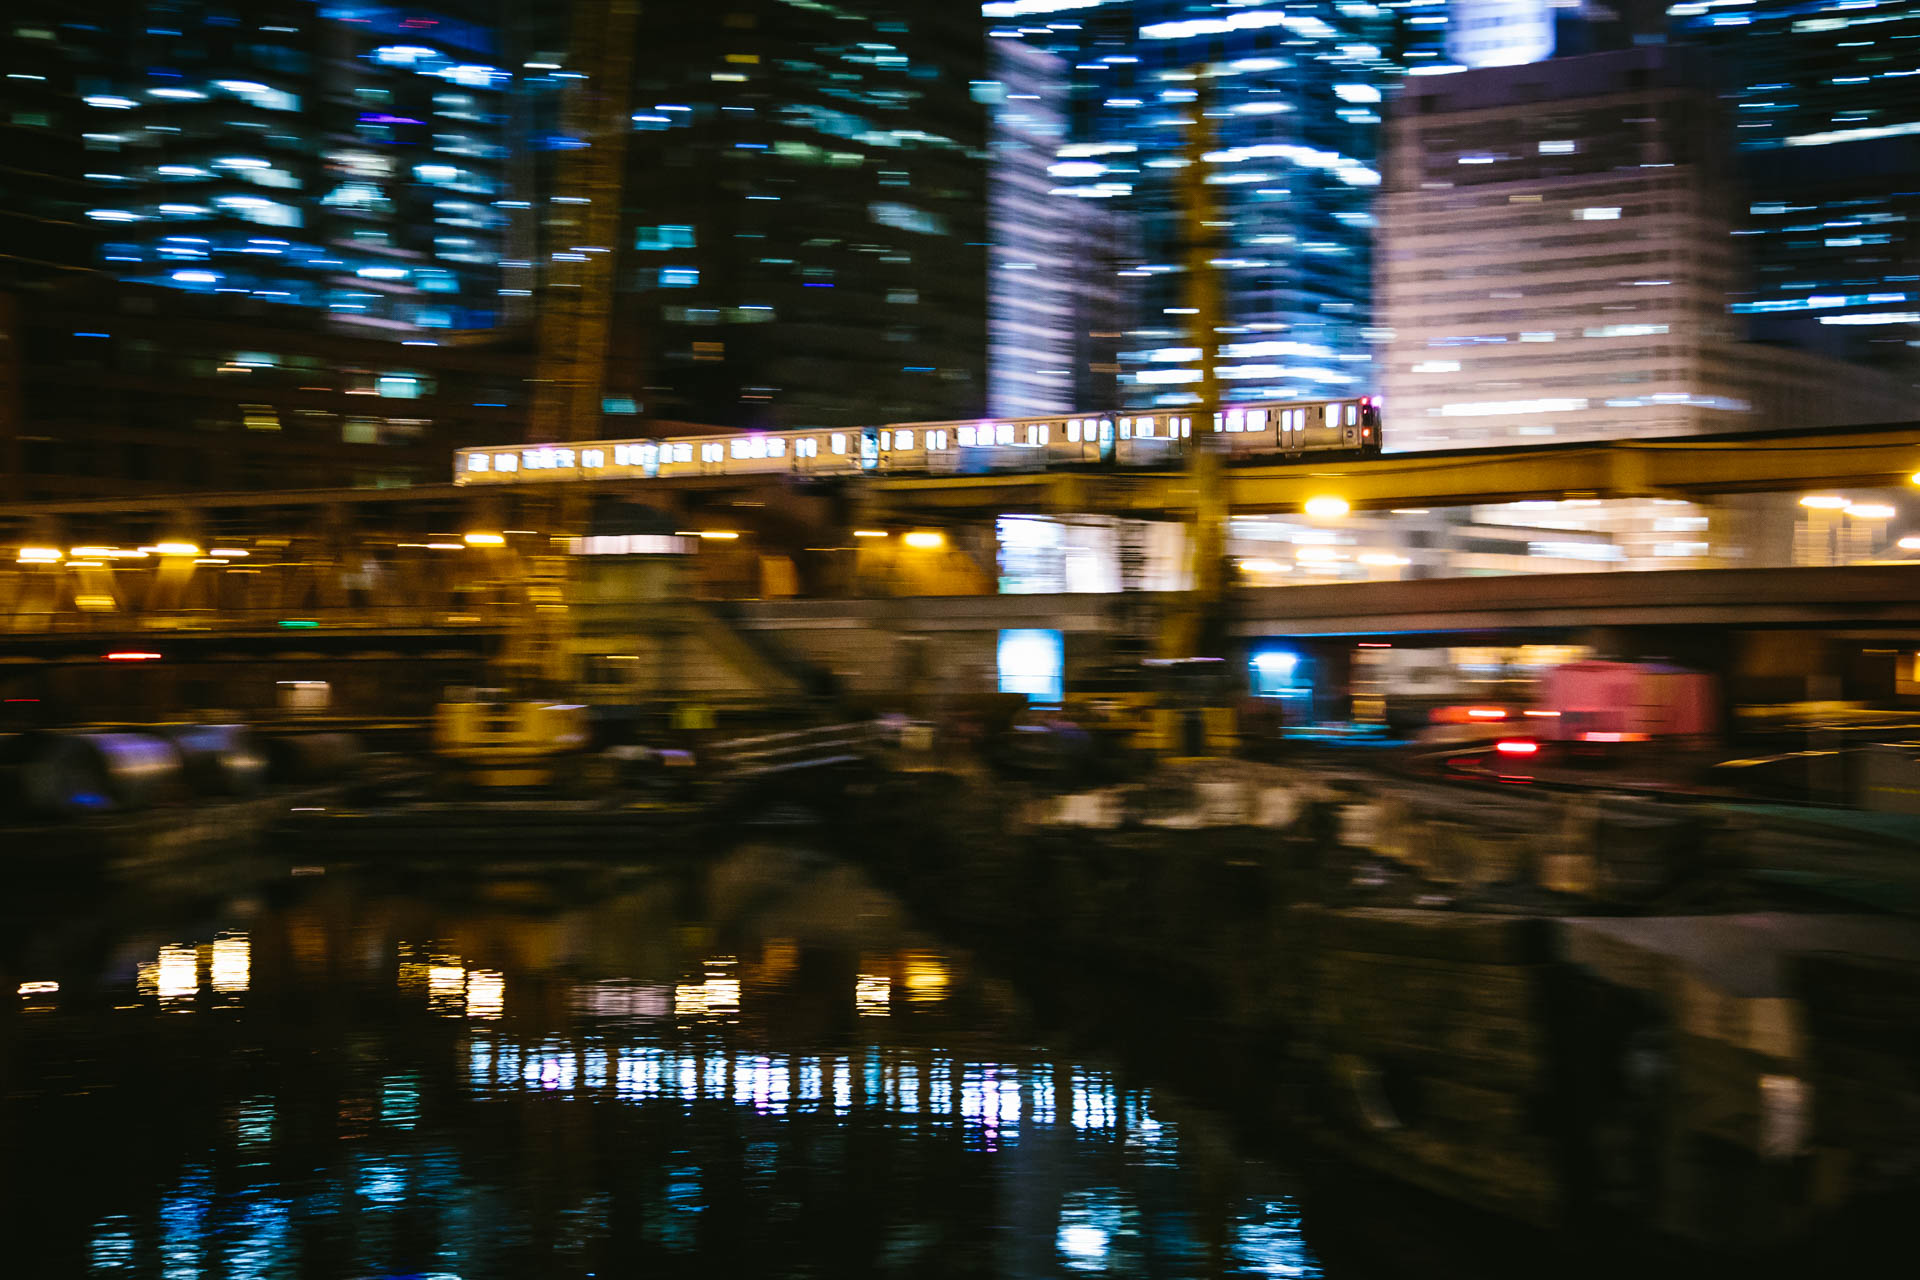 cta_chicago_l_pan_lake_st_bridge_nightuntitled